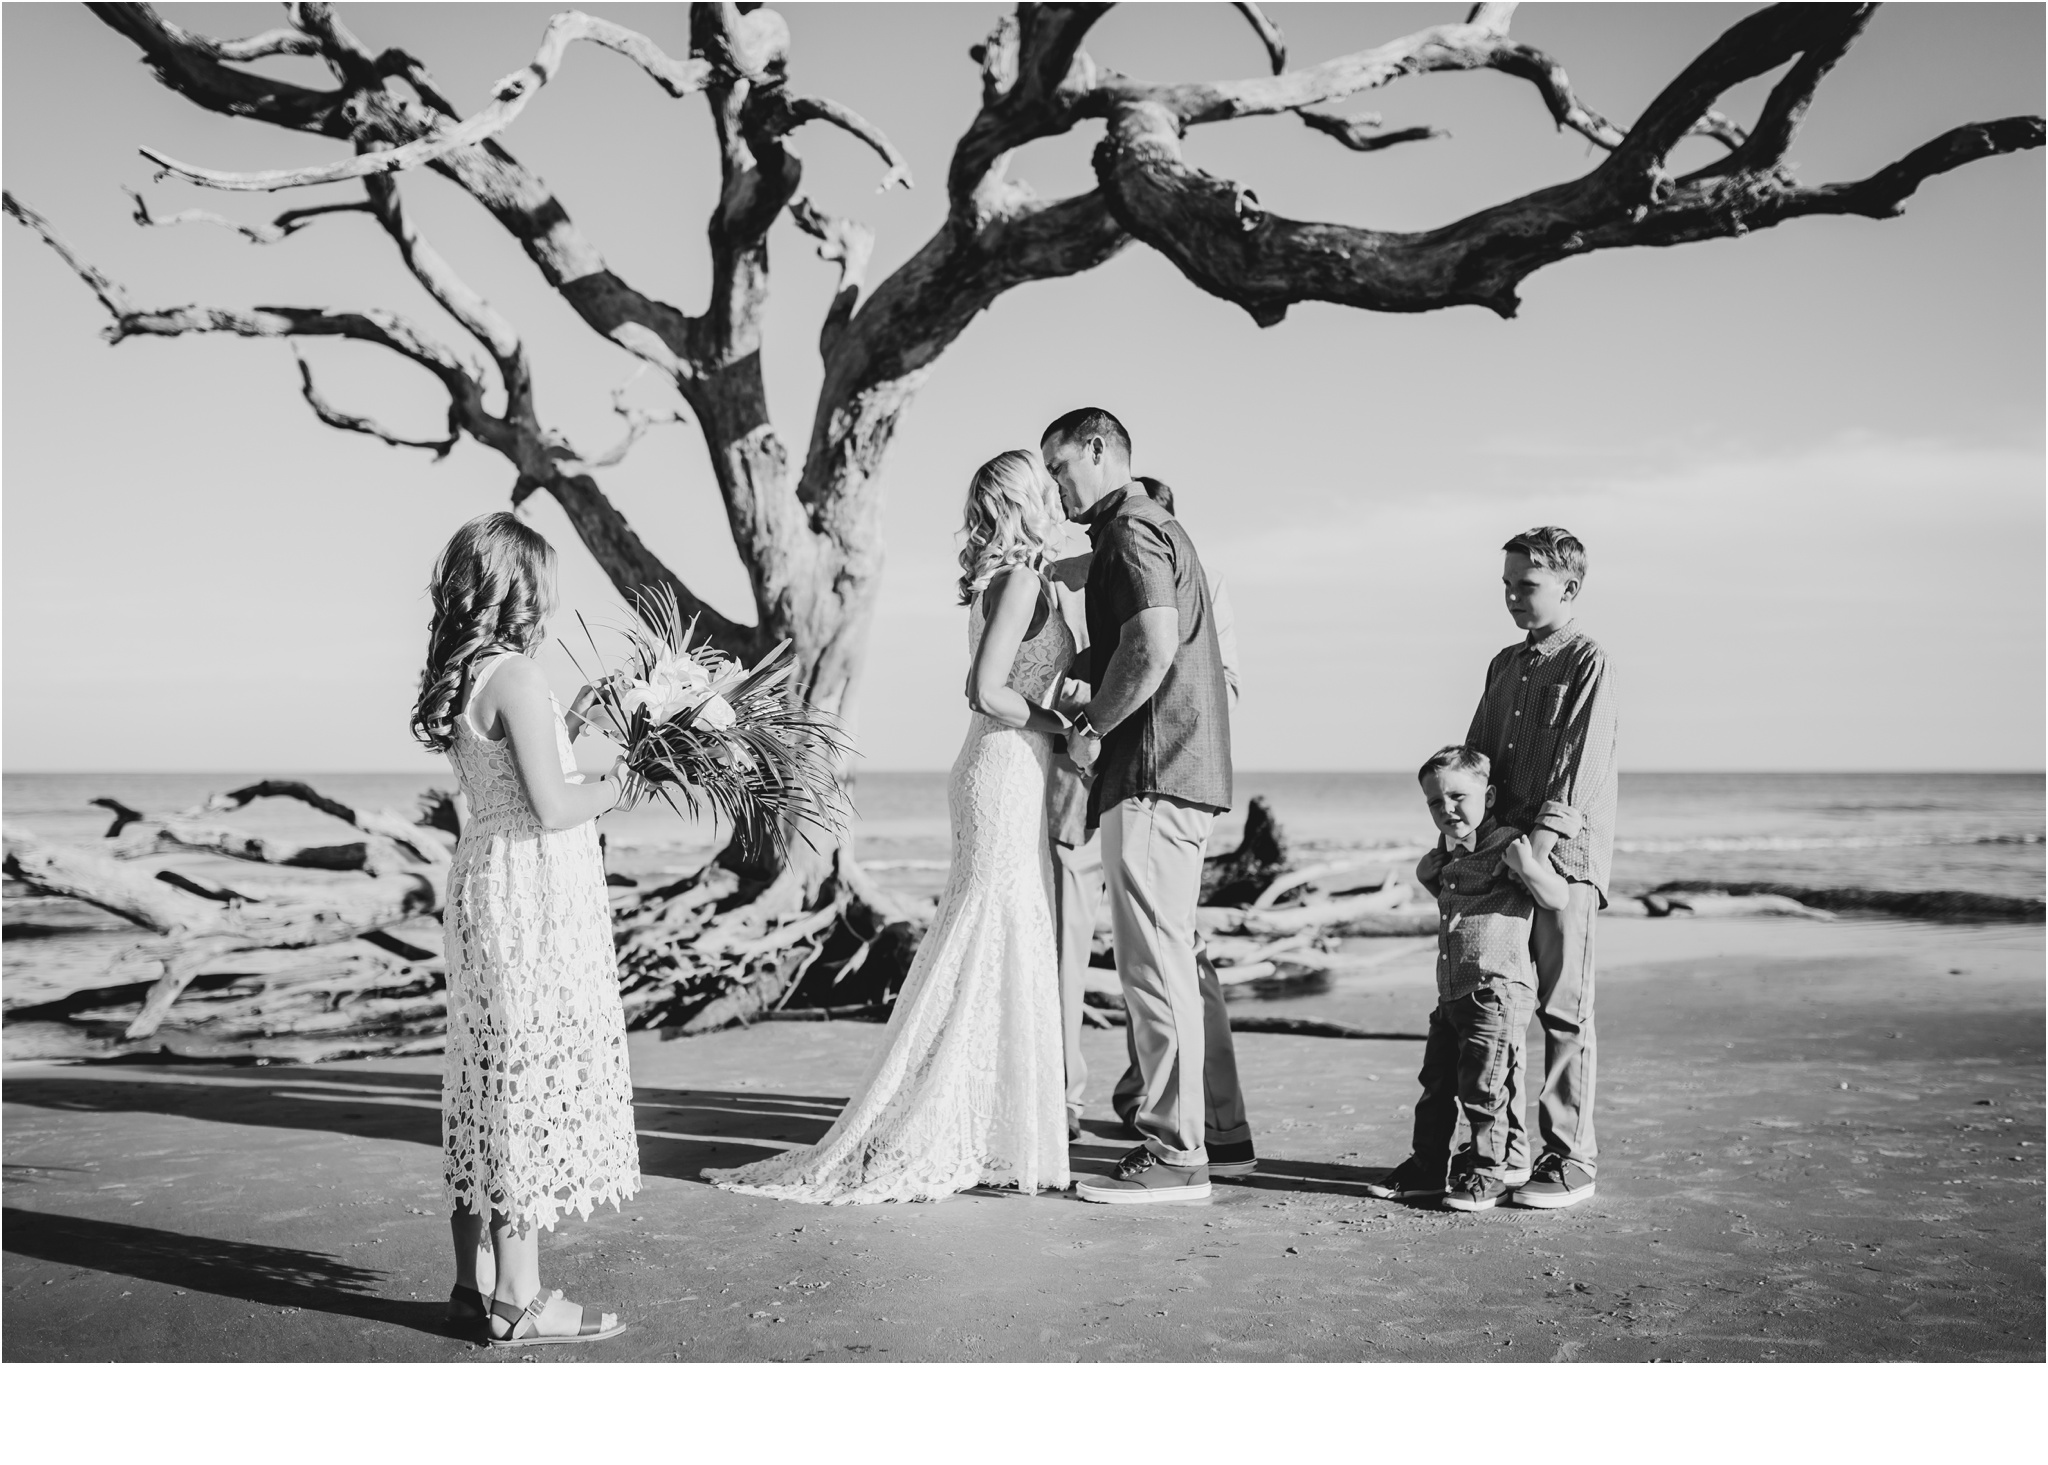 Rainey_Gregg_Photography_St._Simons_Island_Georgia_California_Wedding_Portrait_Photography_1569.jpg